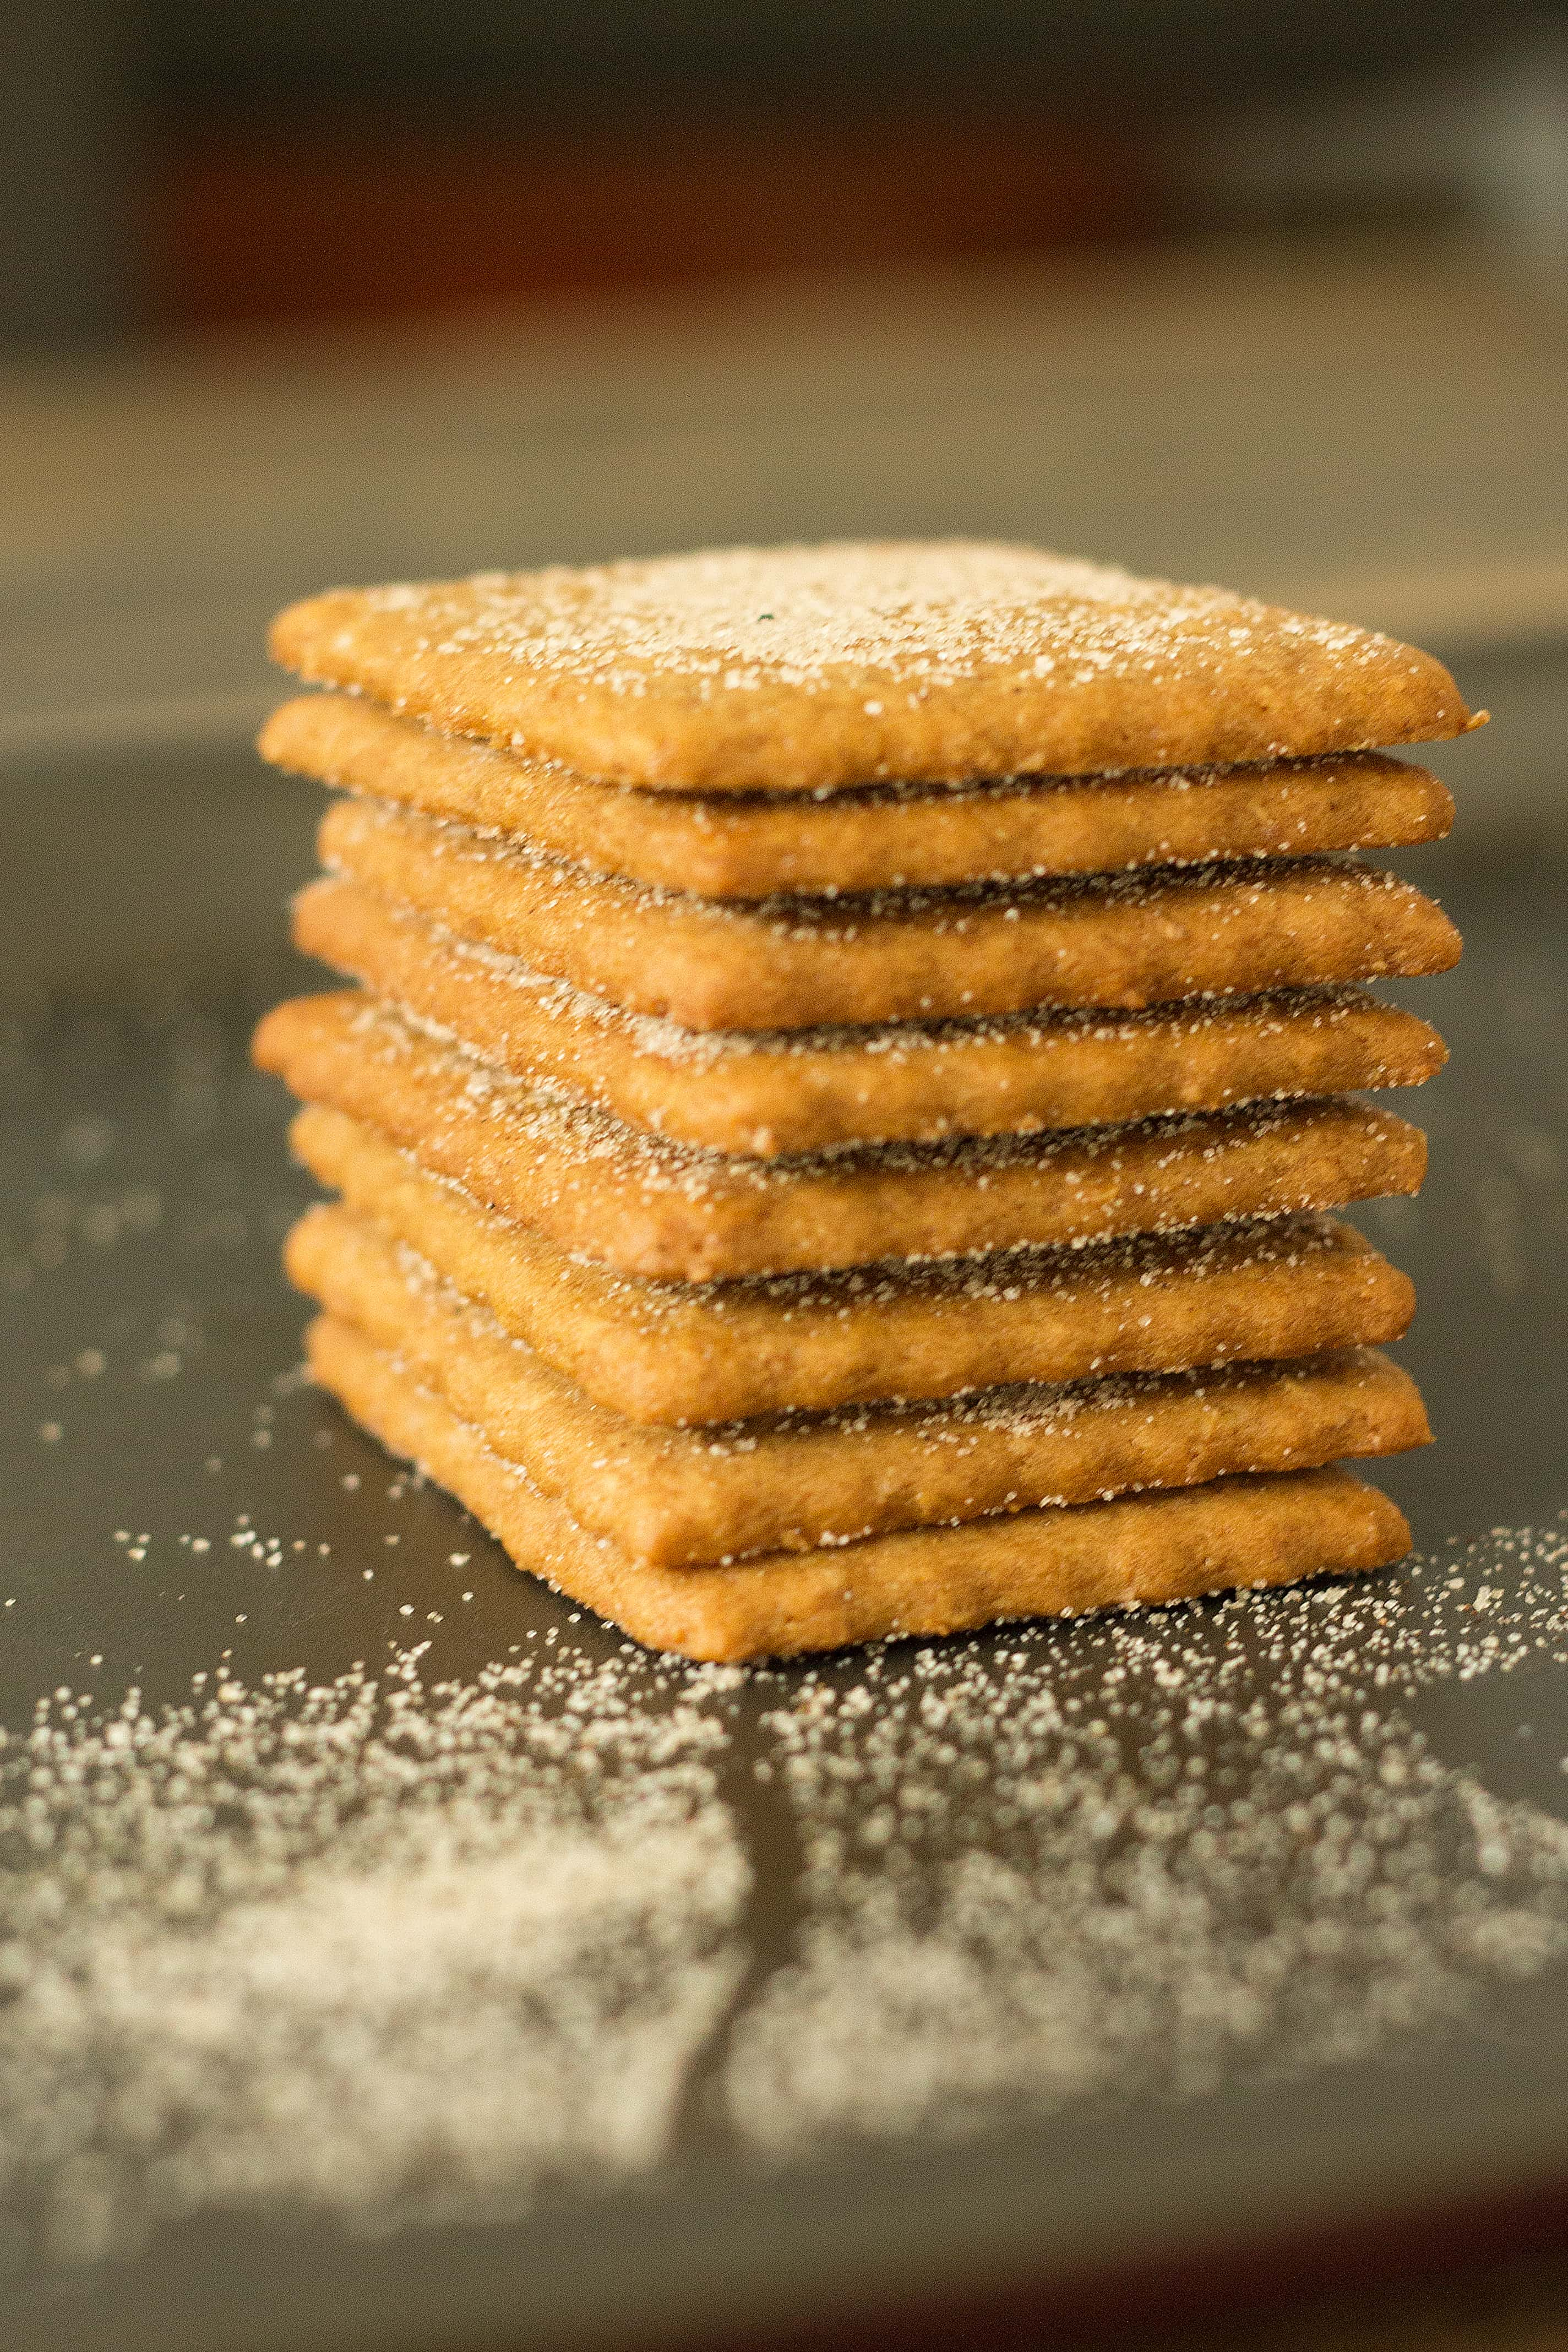 Homemade graham crackers are a fun weekend project your kids will go nuts for, not to mention a delicious DIY!